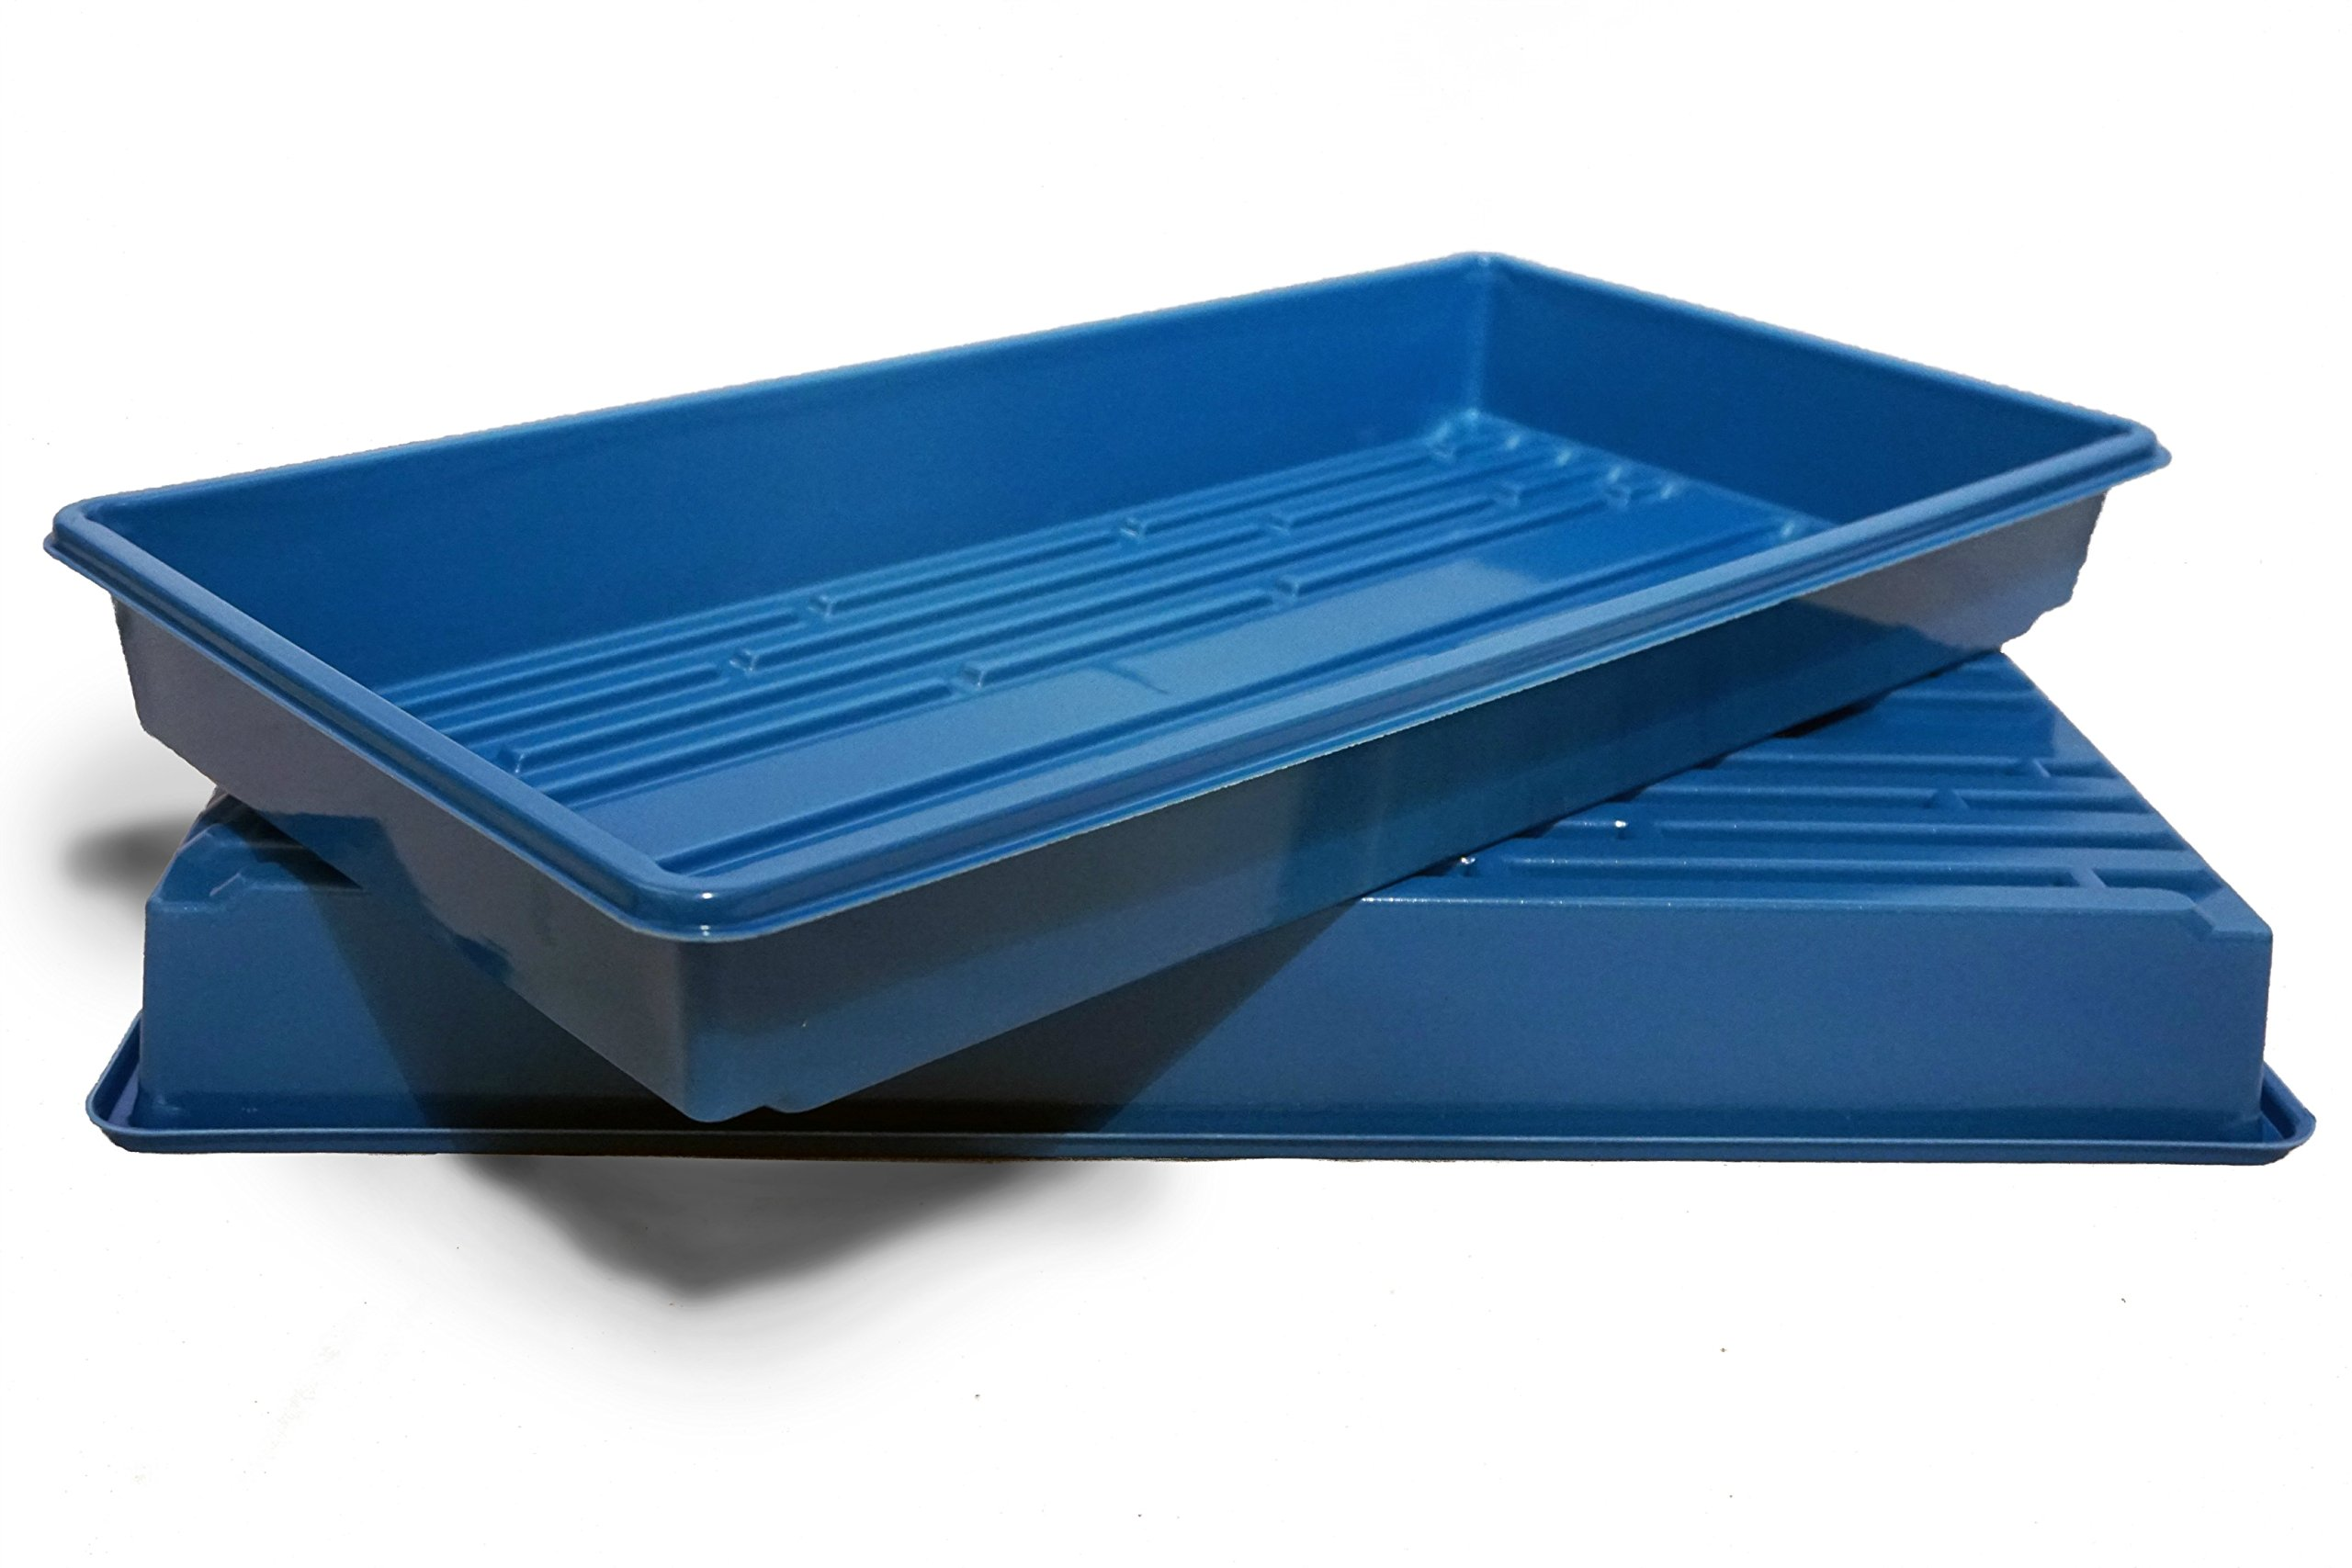 Made in USA Blue 1020 Growing Tray for garden seeds, Microgreens, Wheatgrass (No Drain Holes) (2, Blue)